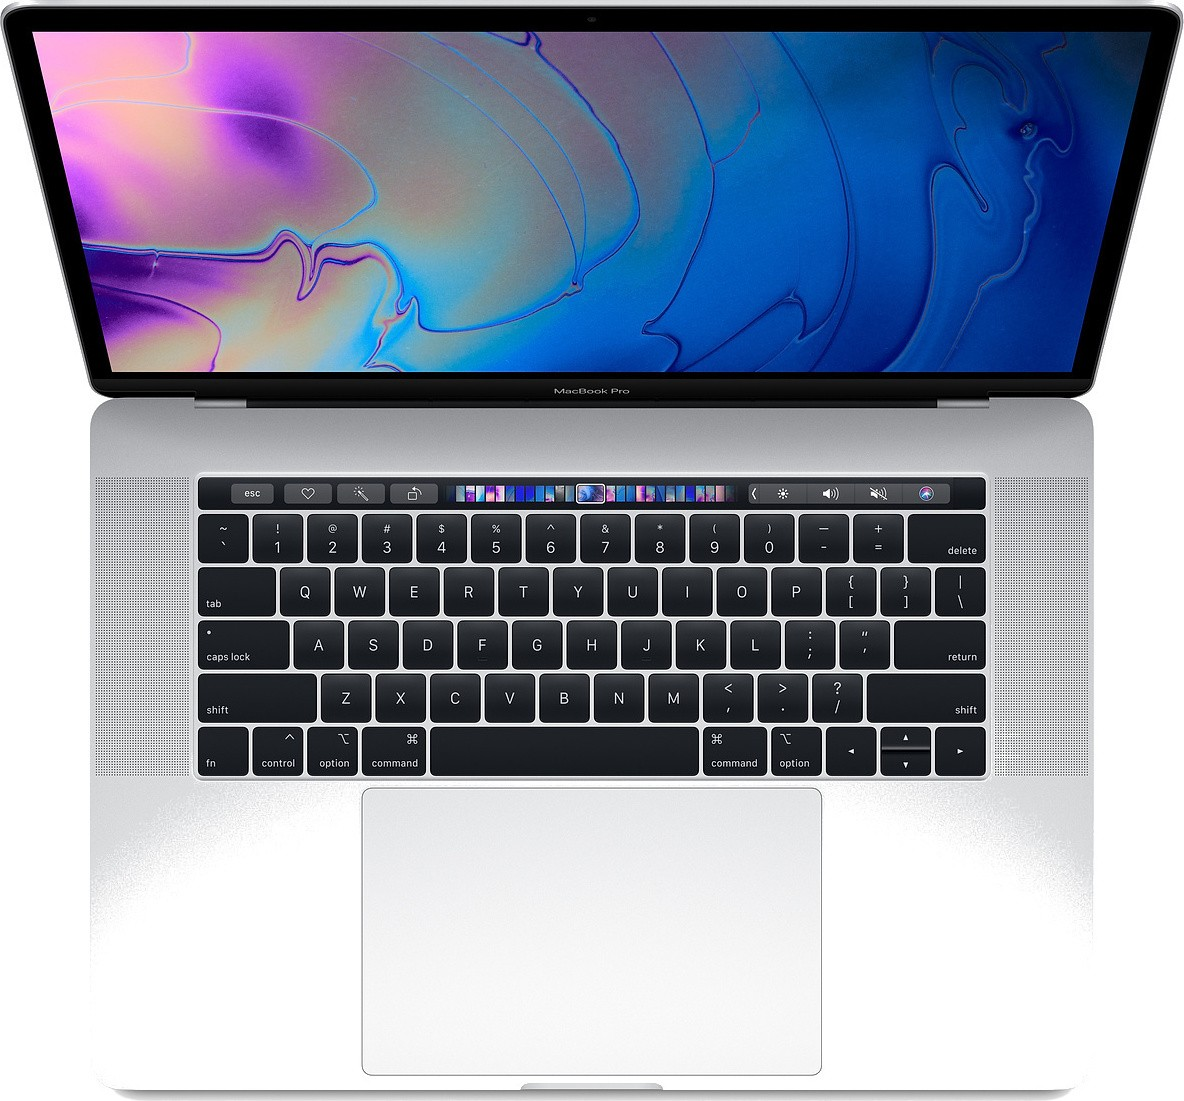 152kg Laptops Netbooks 34 Dell Xps 15 9570 I7 8750h 16gb 512gb 1050ti Win10 Pro 156 4k Mgmanager Apple Macbook 154 Retina Touch Bar